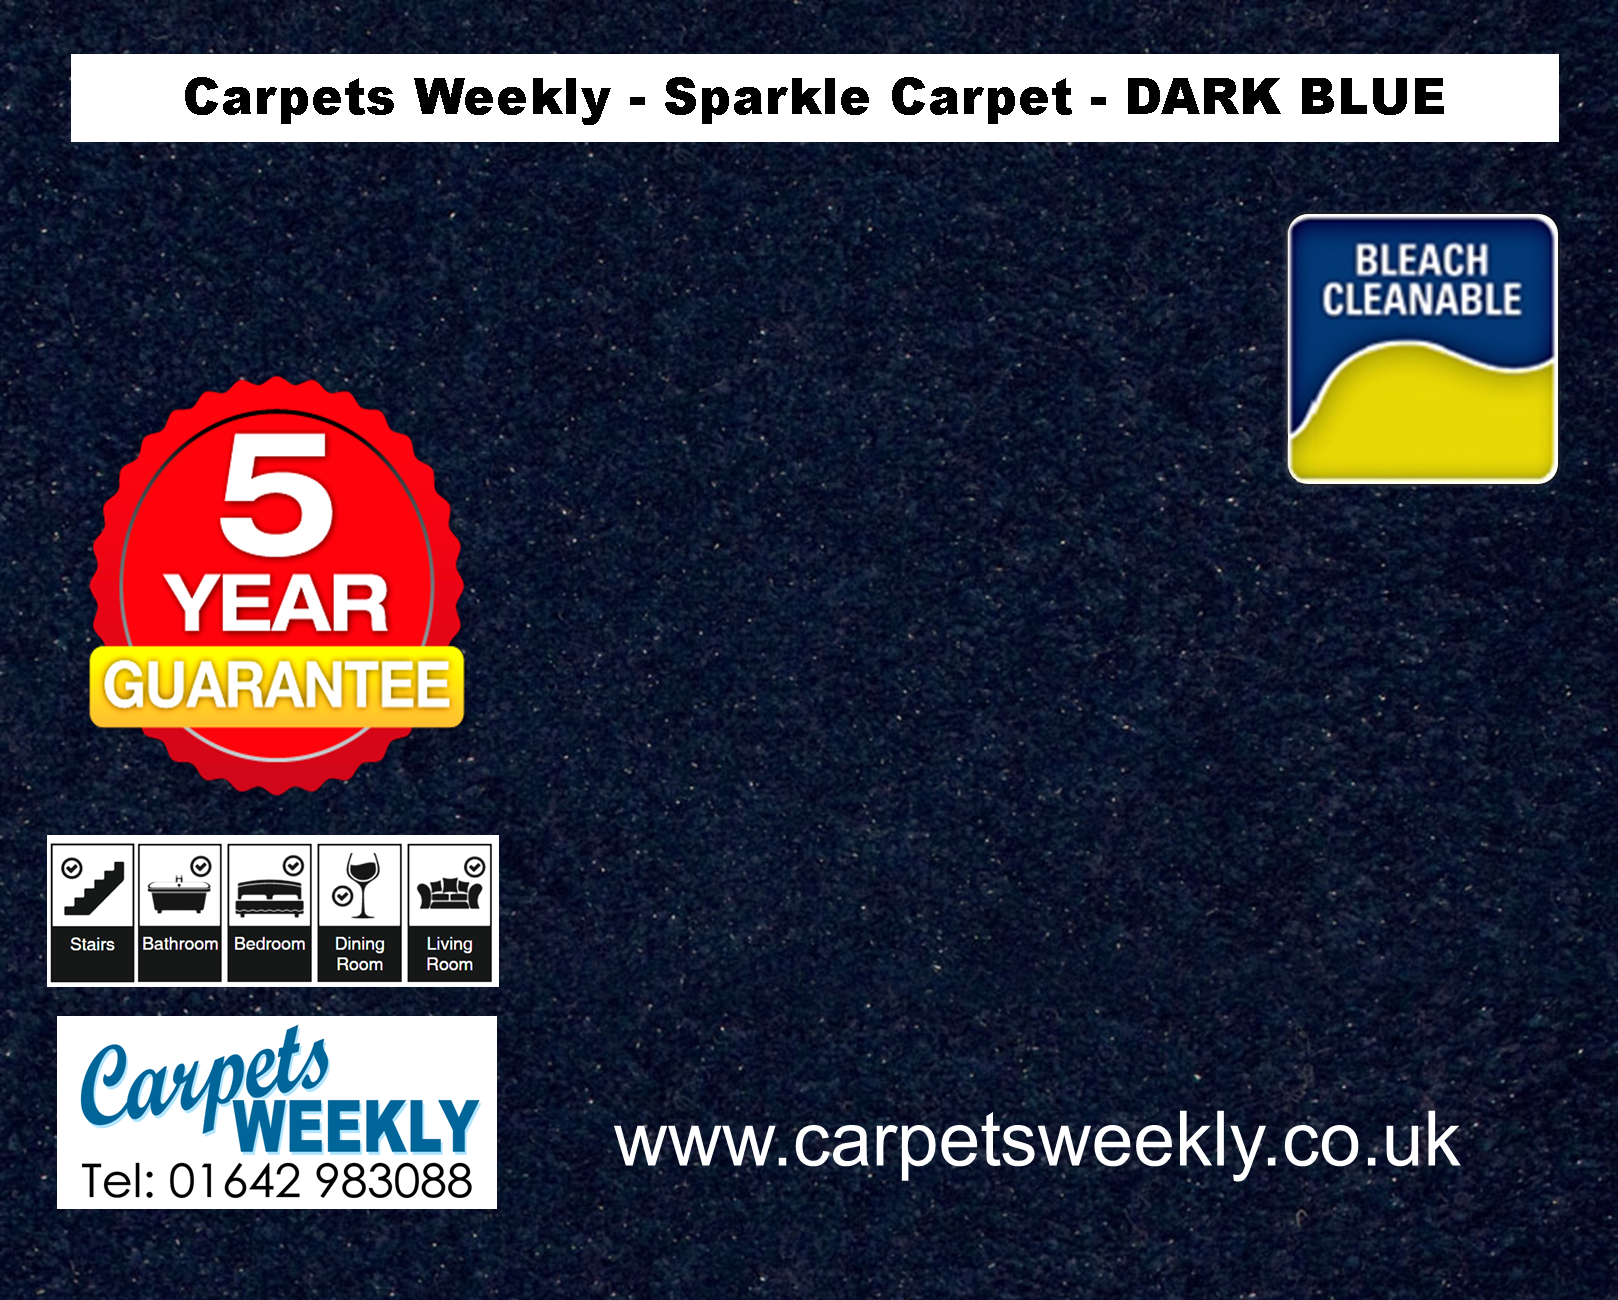 Dark Blue Sparkle Carpet from Carpets Weekly